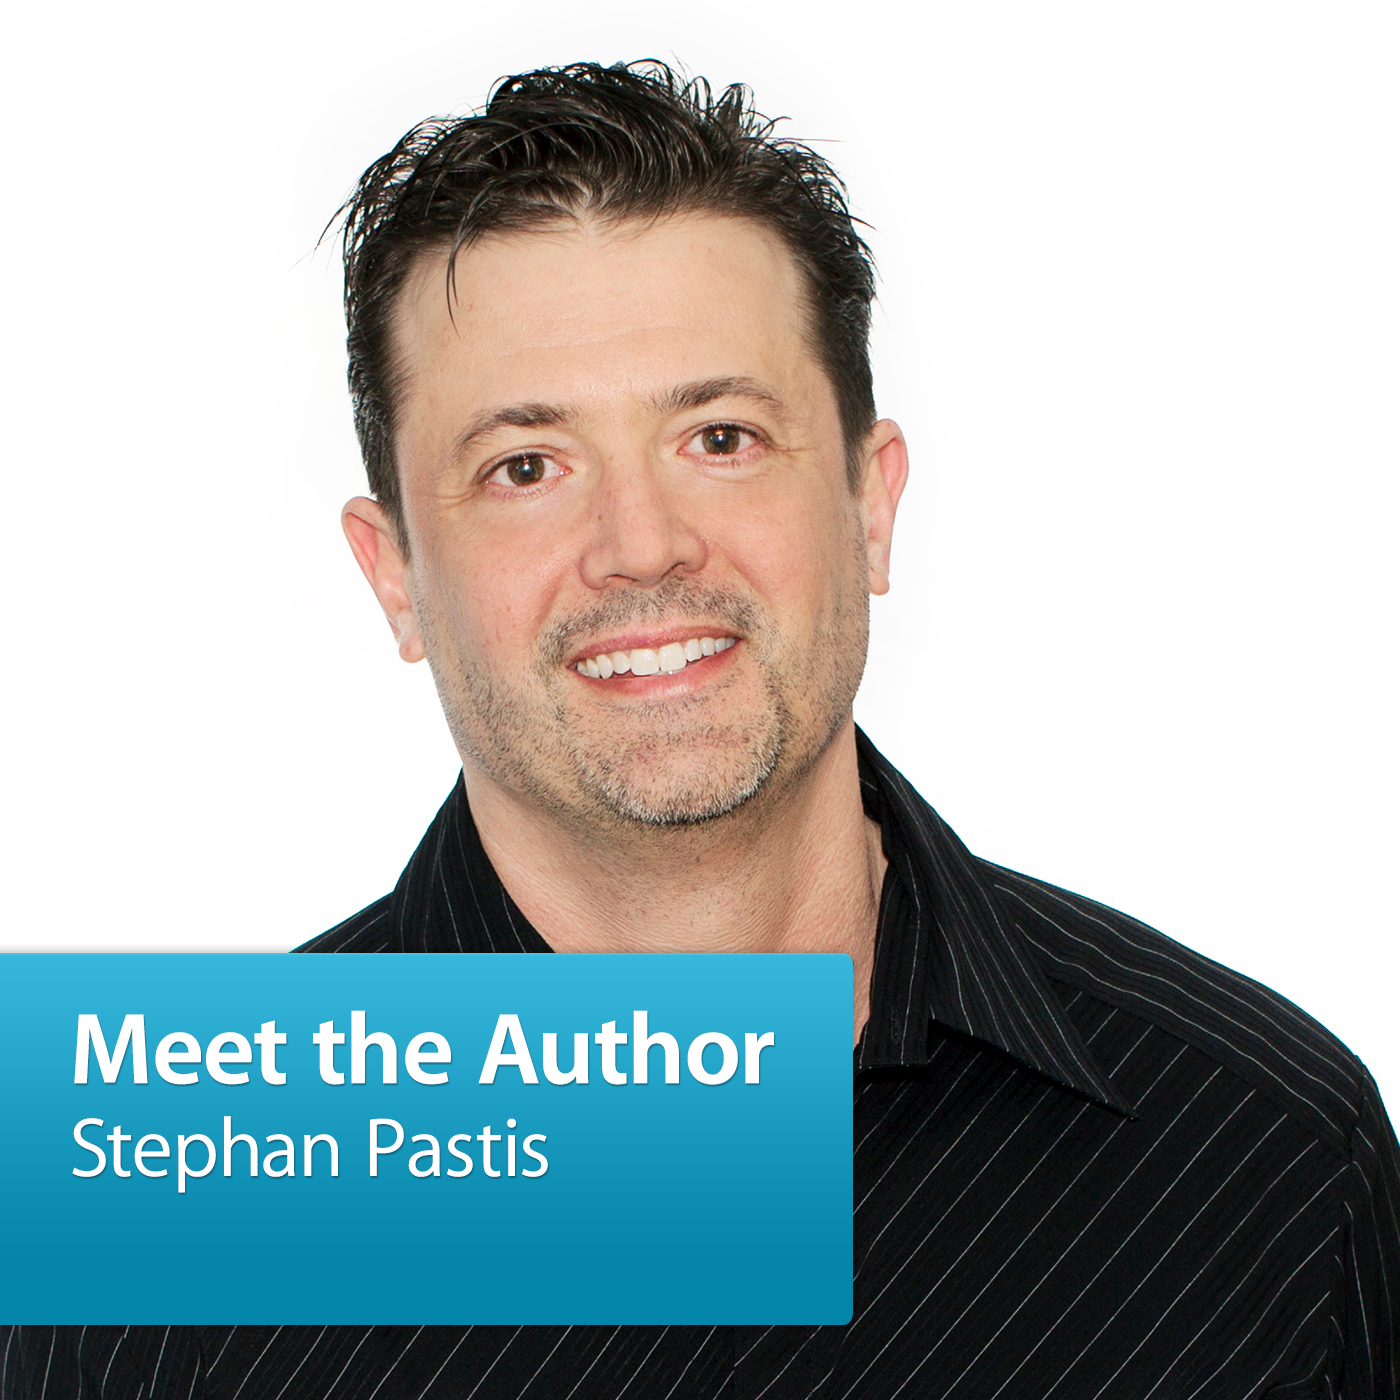 Stephan Pastis: Meet the Author